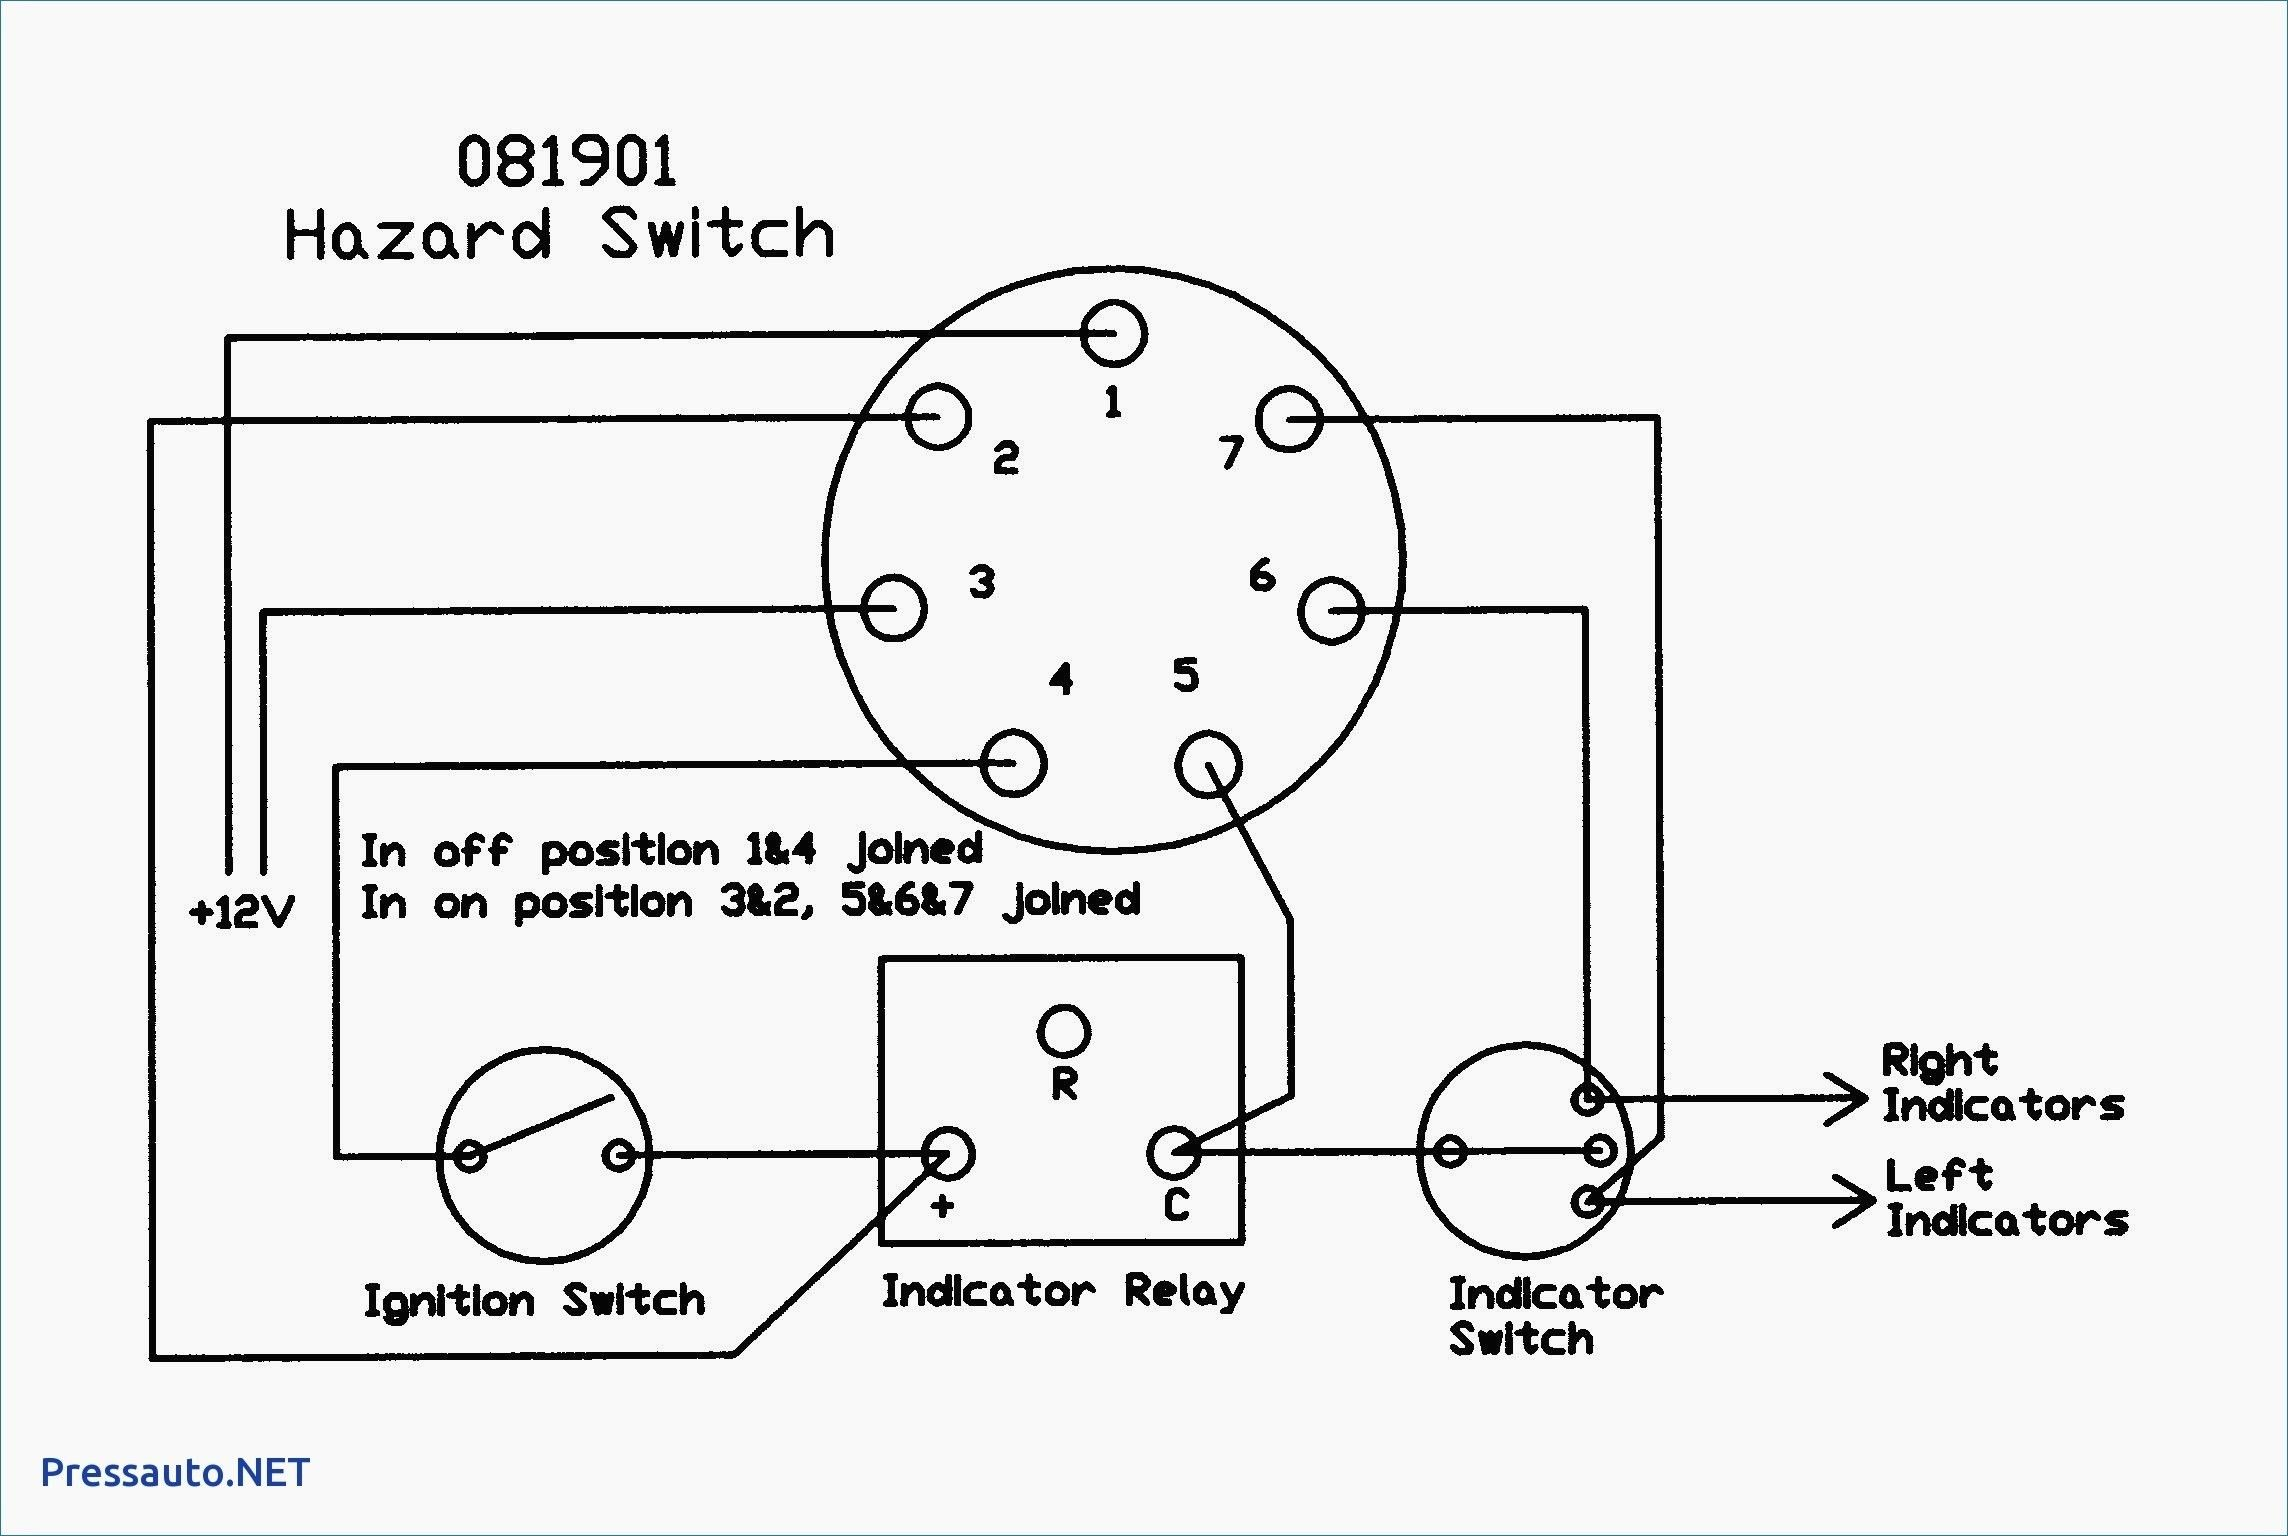 Fresh Wiring Diagram for Hazard Light Switch for